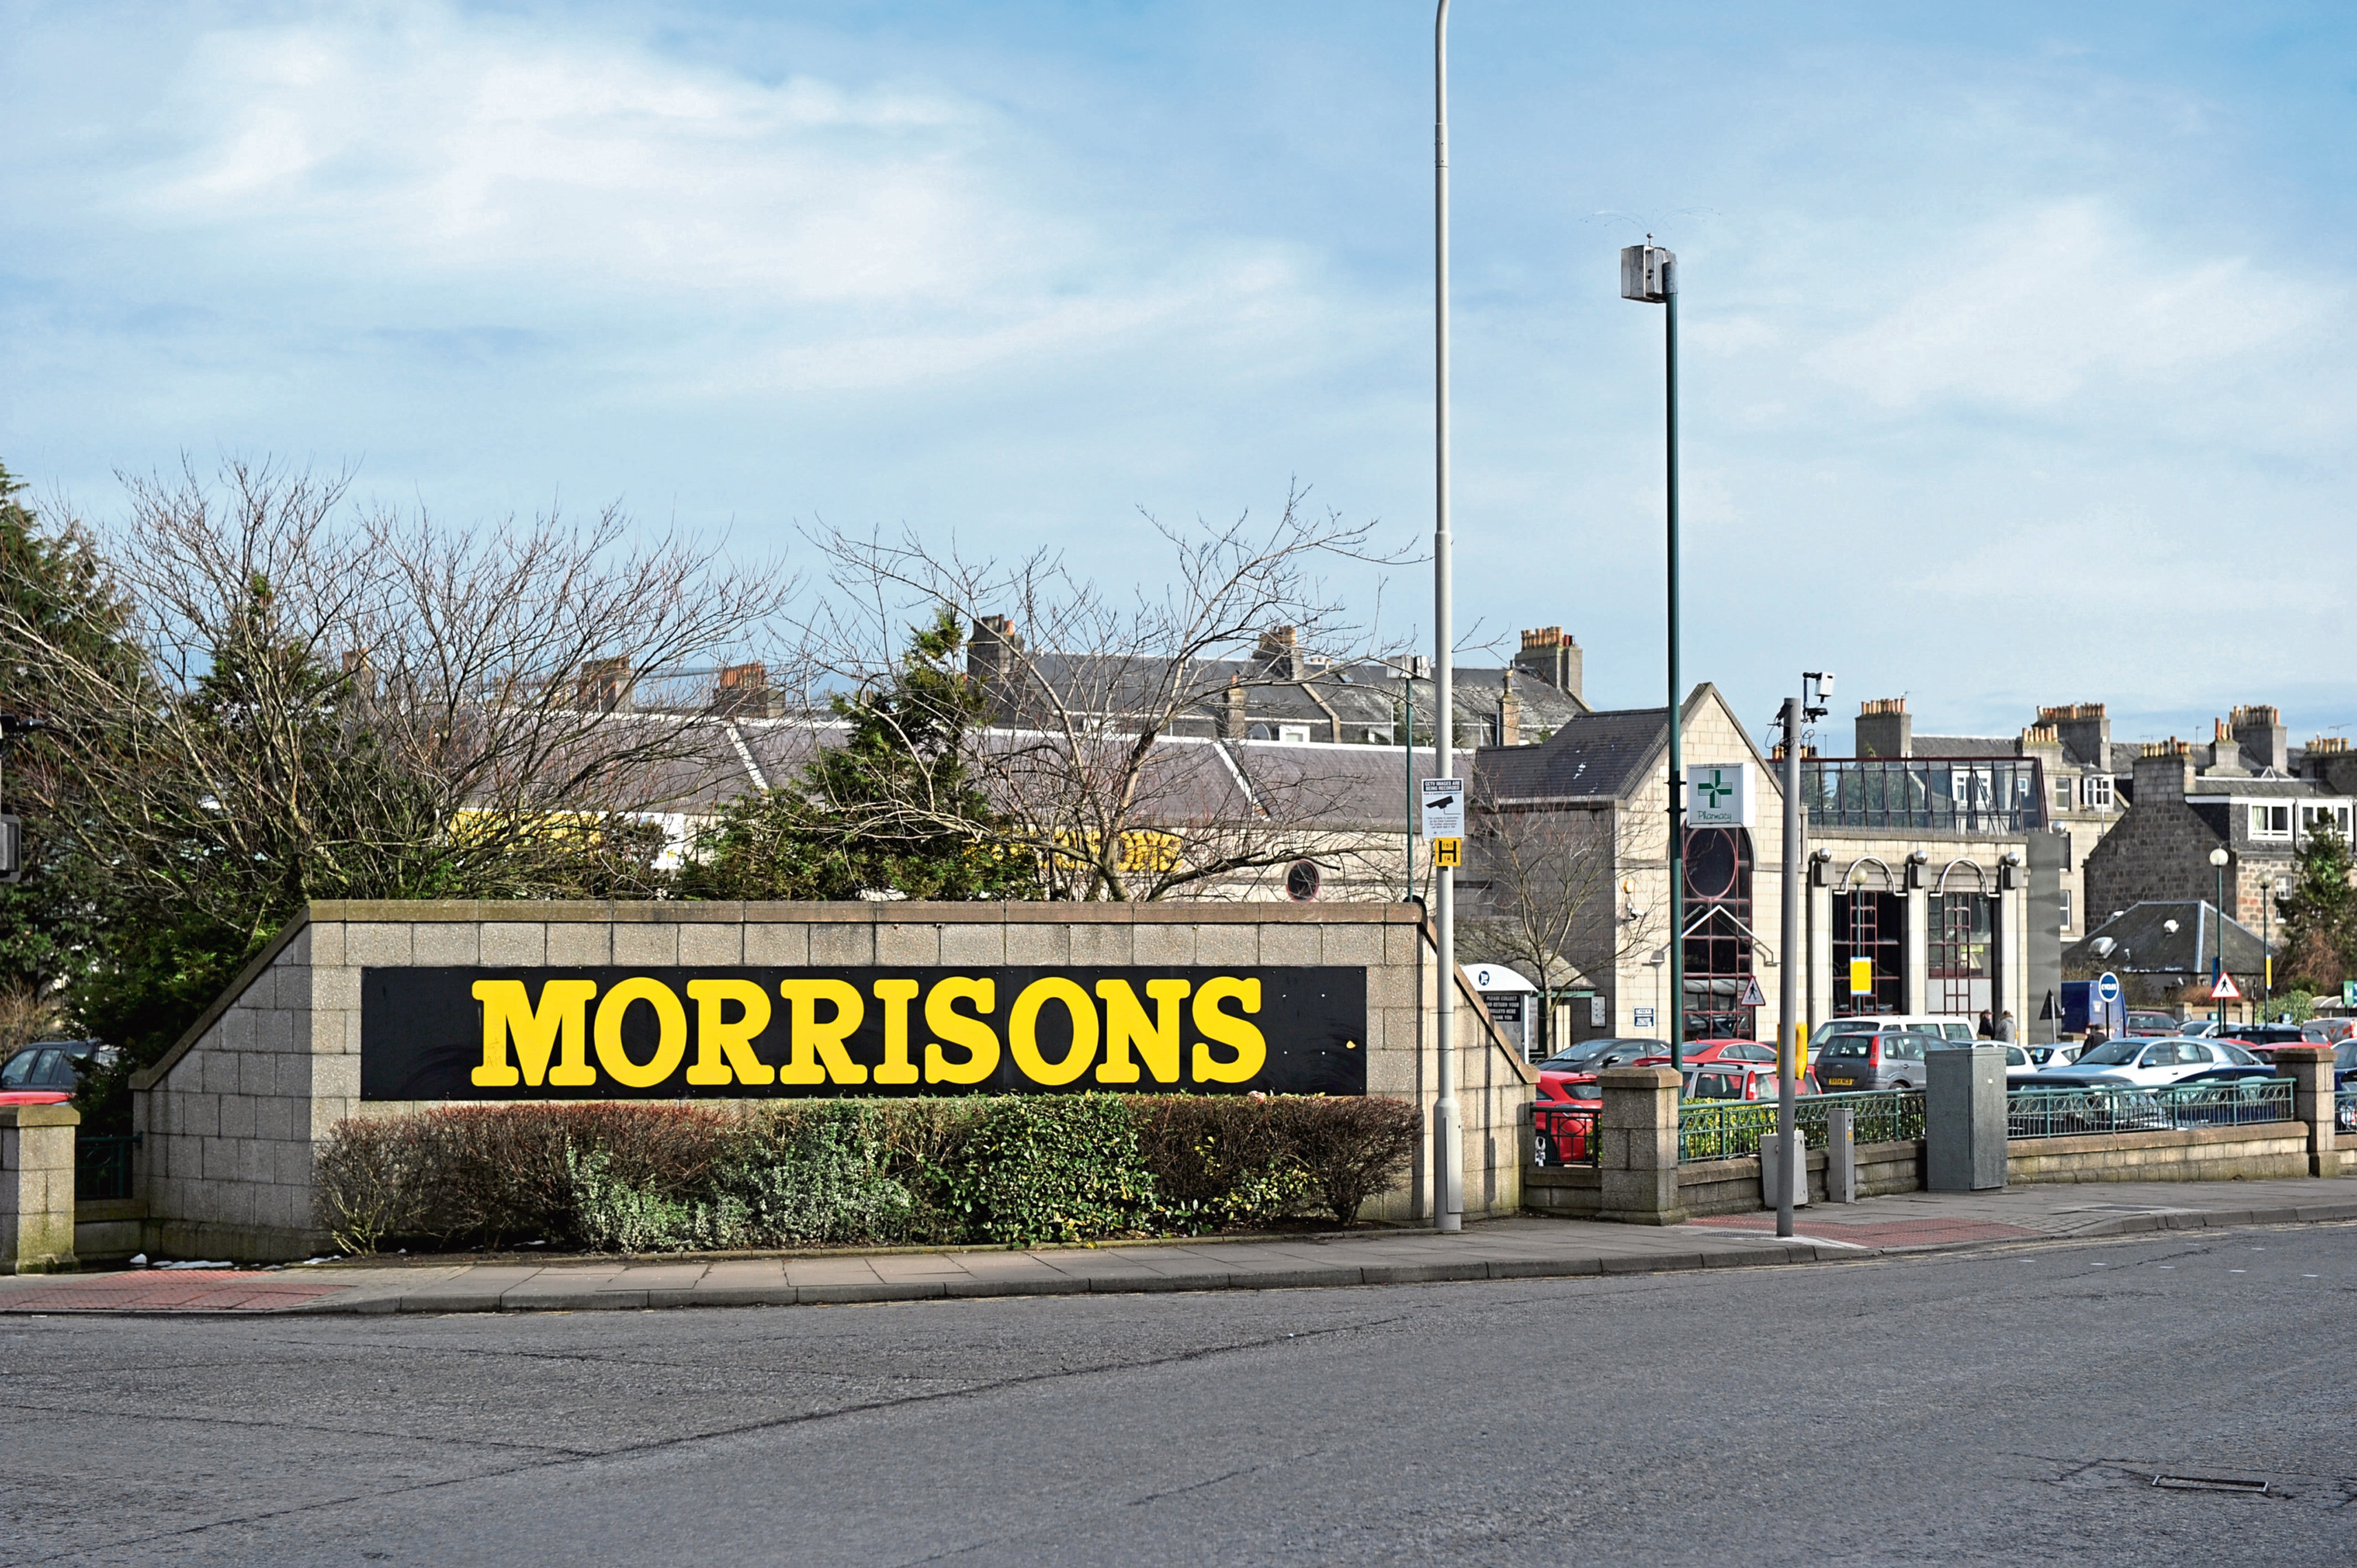 The incident happened in Morrisons car park.